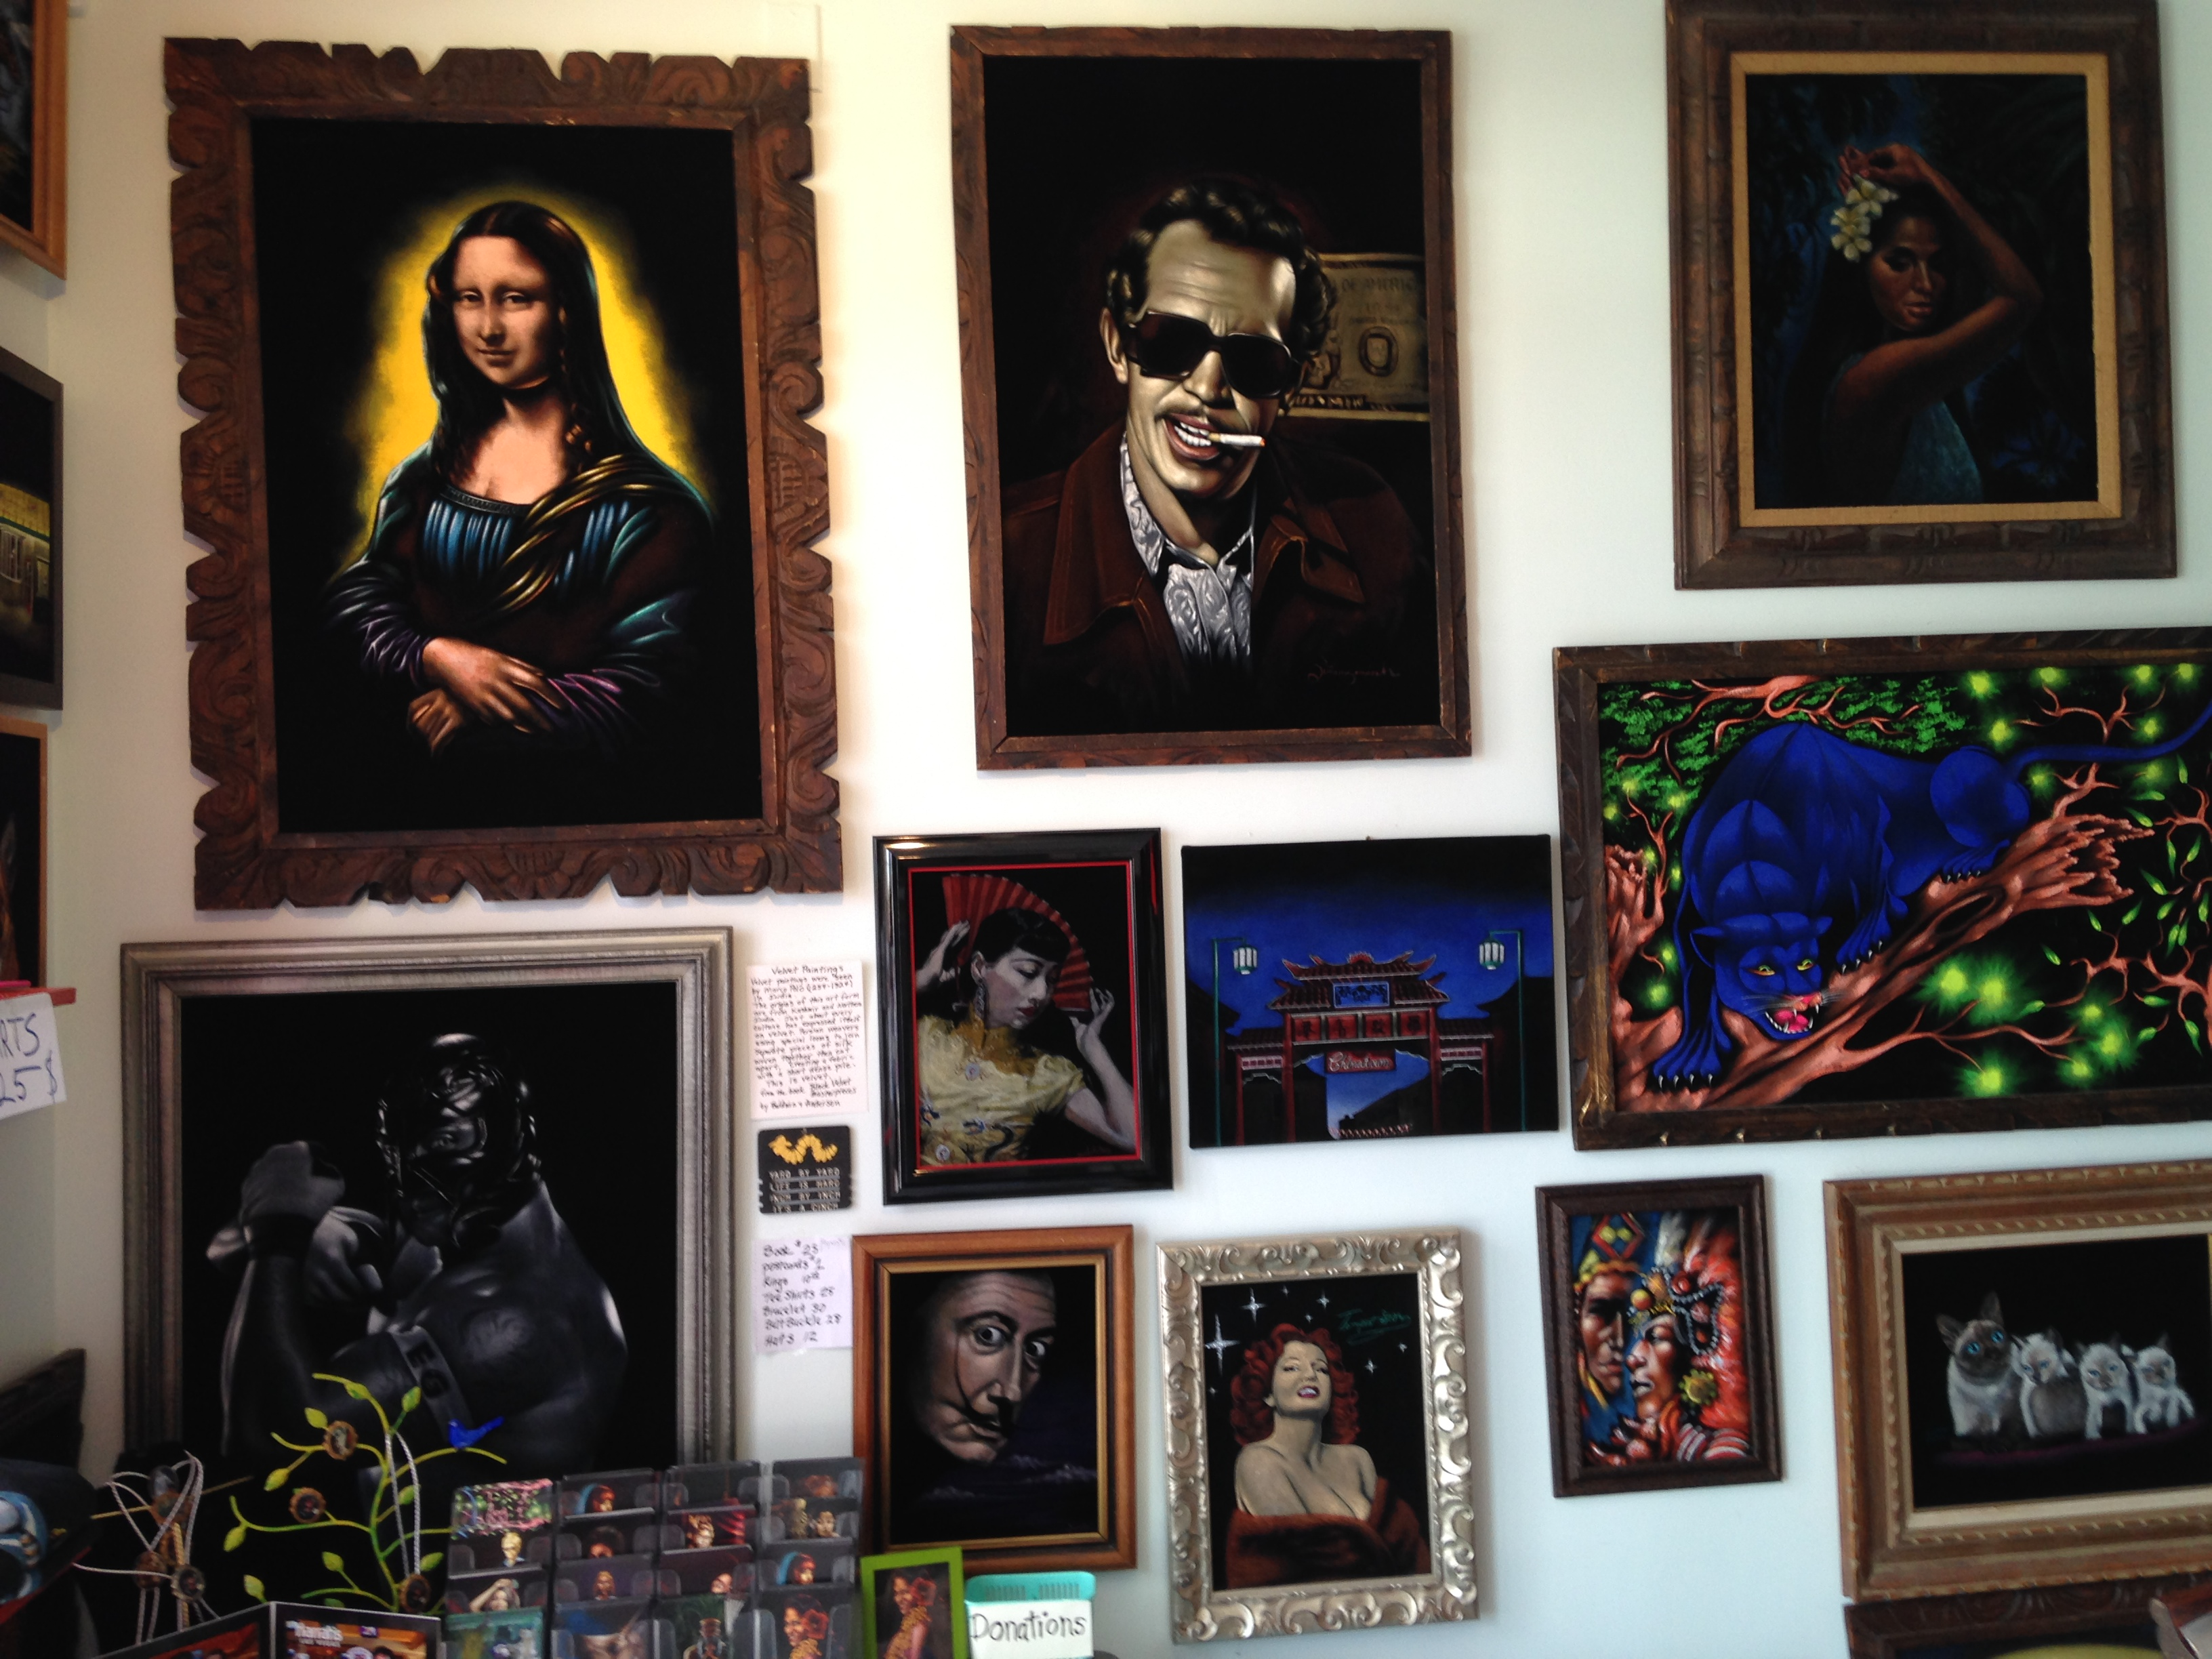 The velveteria art and pop culture gone the velvet route imported like a fine beer from portland oregon the velveteria has recently found local love amongst the other weird museums of los angeles solutioingenieria Gallery